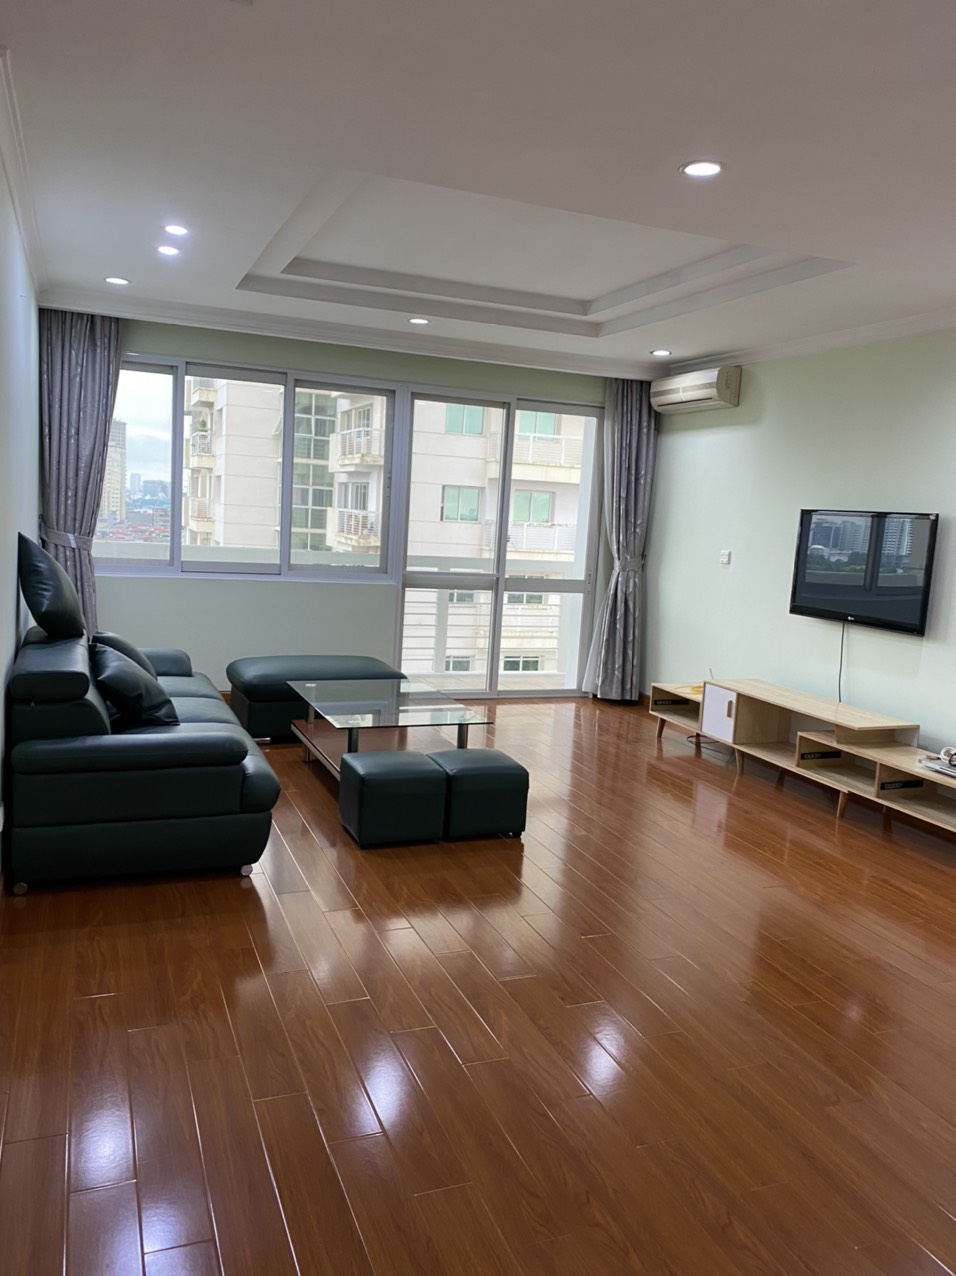 At E4 building in Ciputra apartment for rent, has an area of 153 sqm designed with 3 bedrooms.